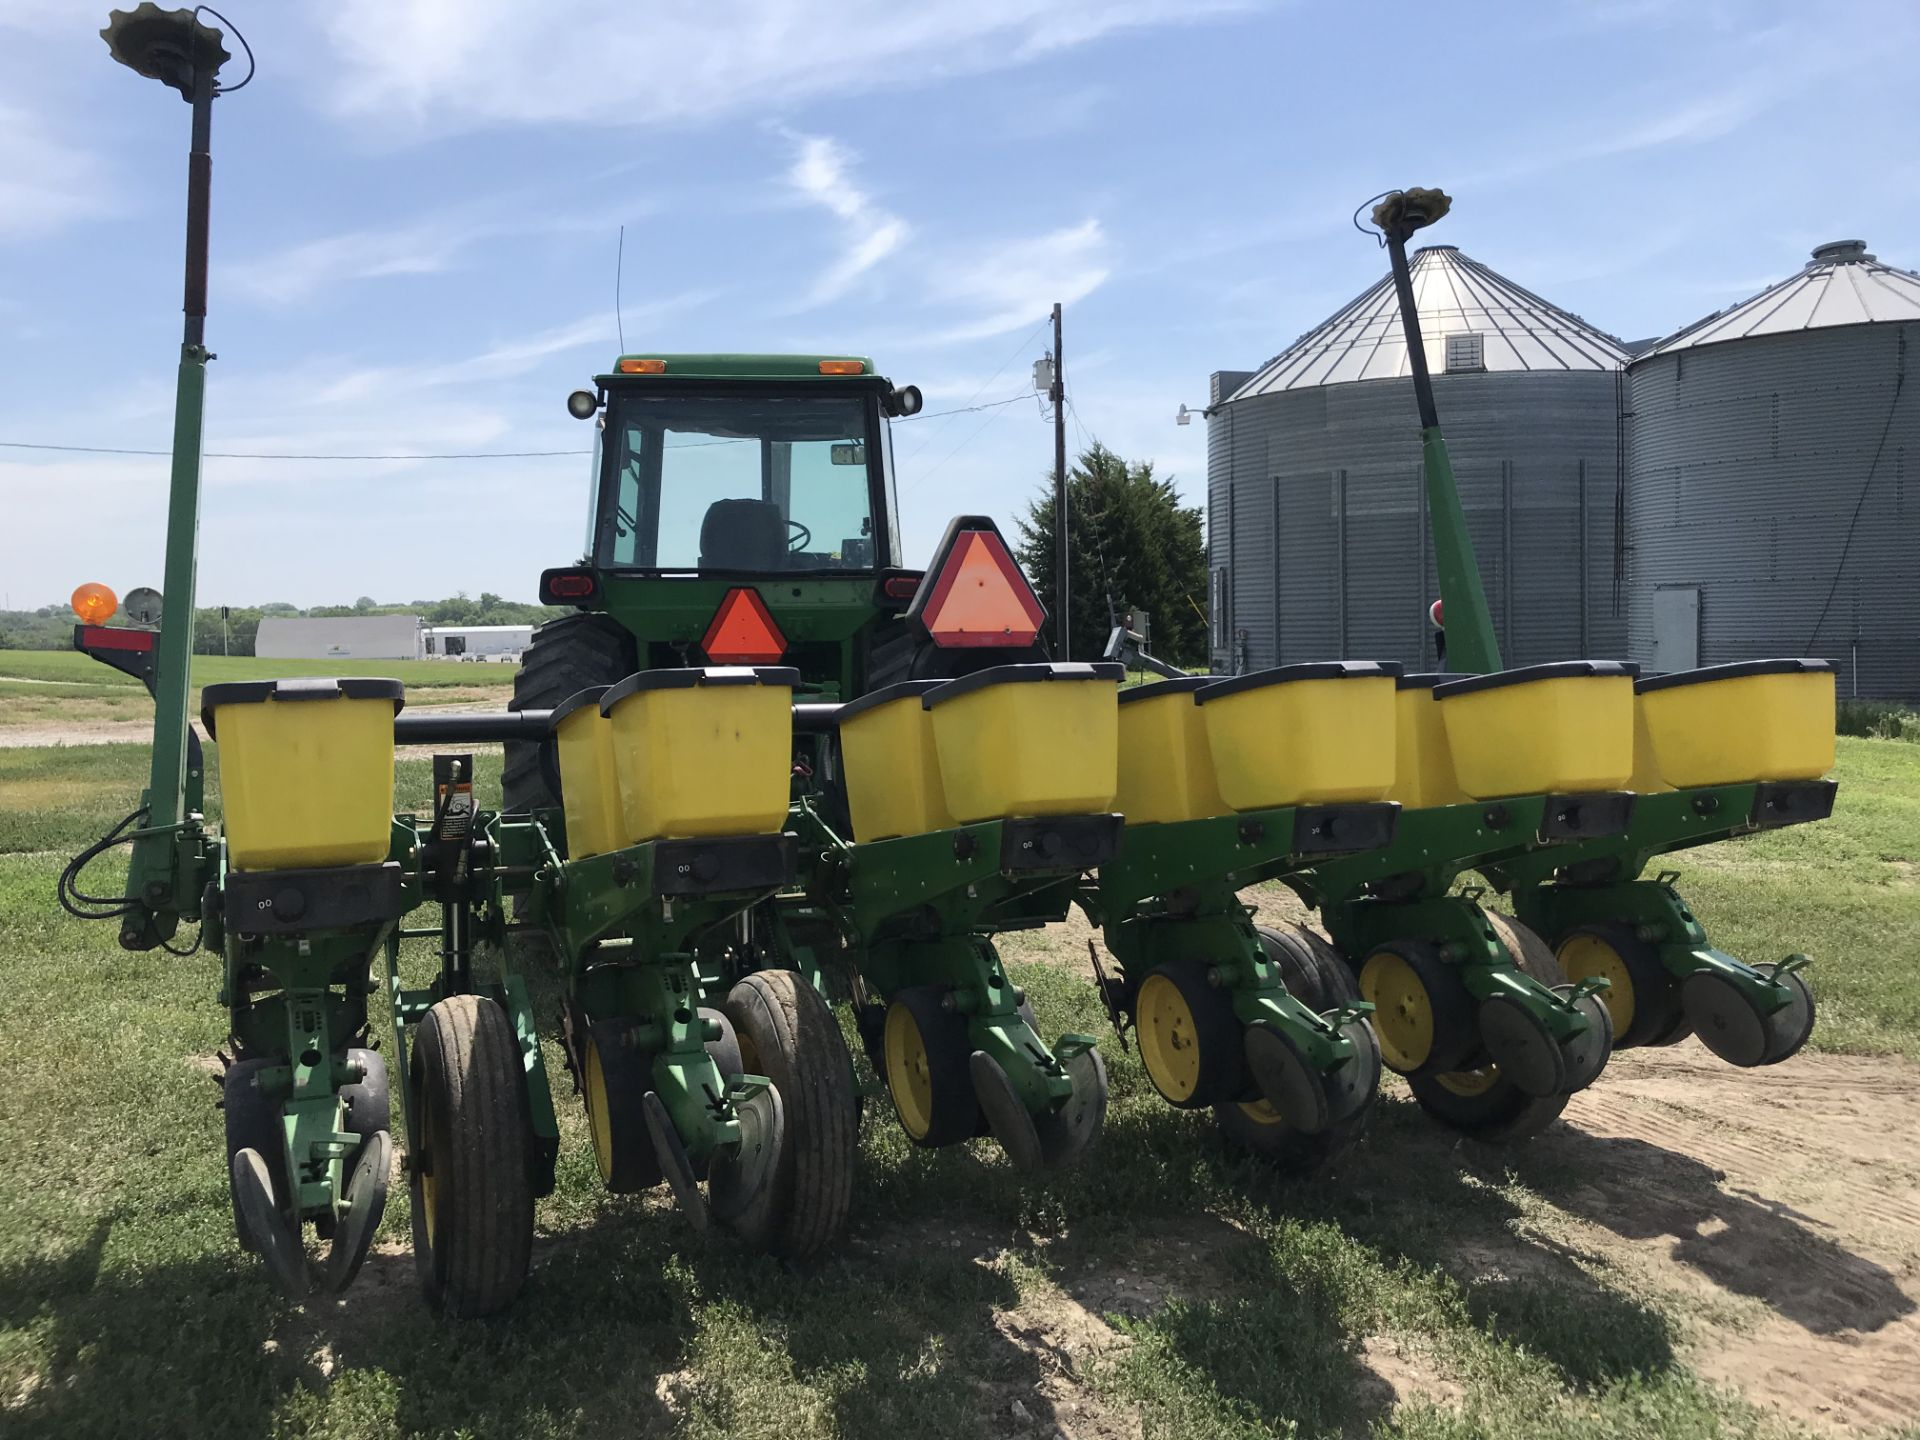 Lot 35 - JD 7200 6RN MaxEmerge 2 PT Planter S#660988, Marlin Row Cleaners w/Monitor (good);